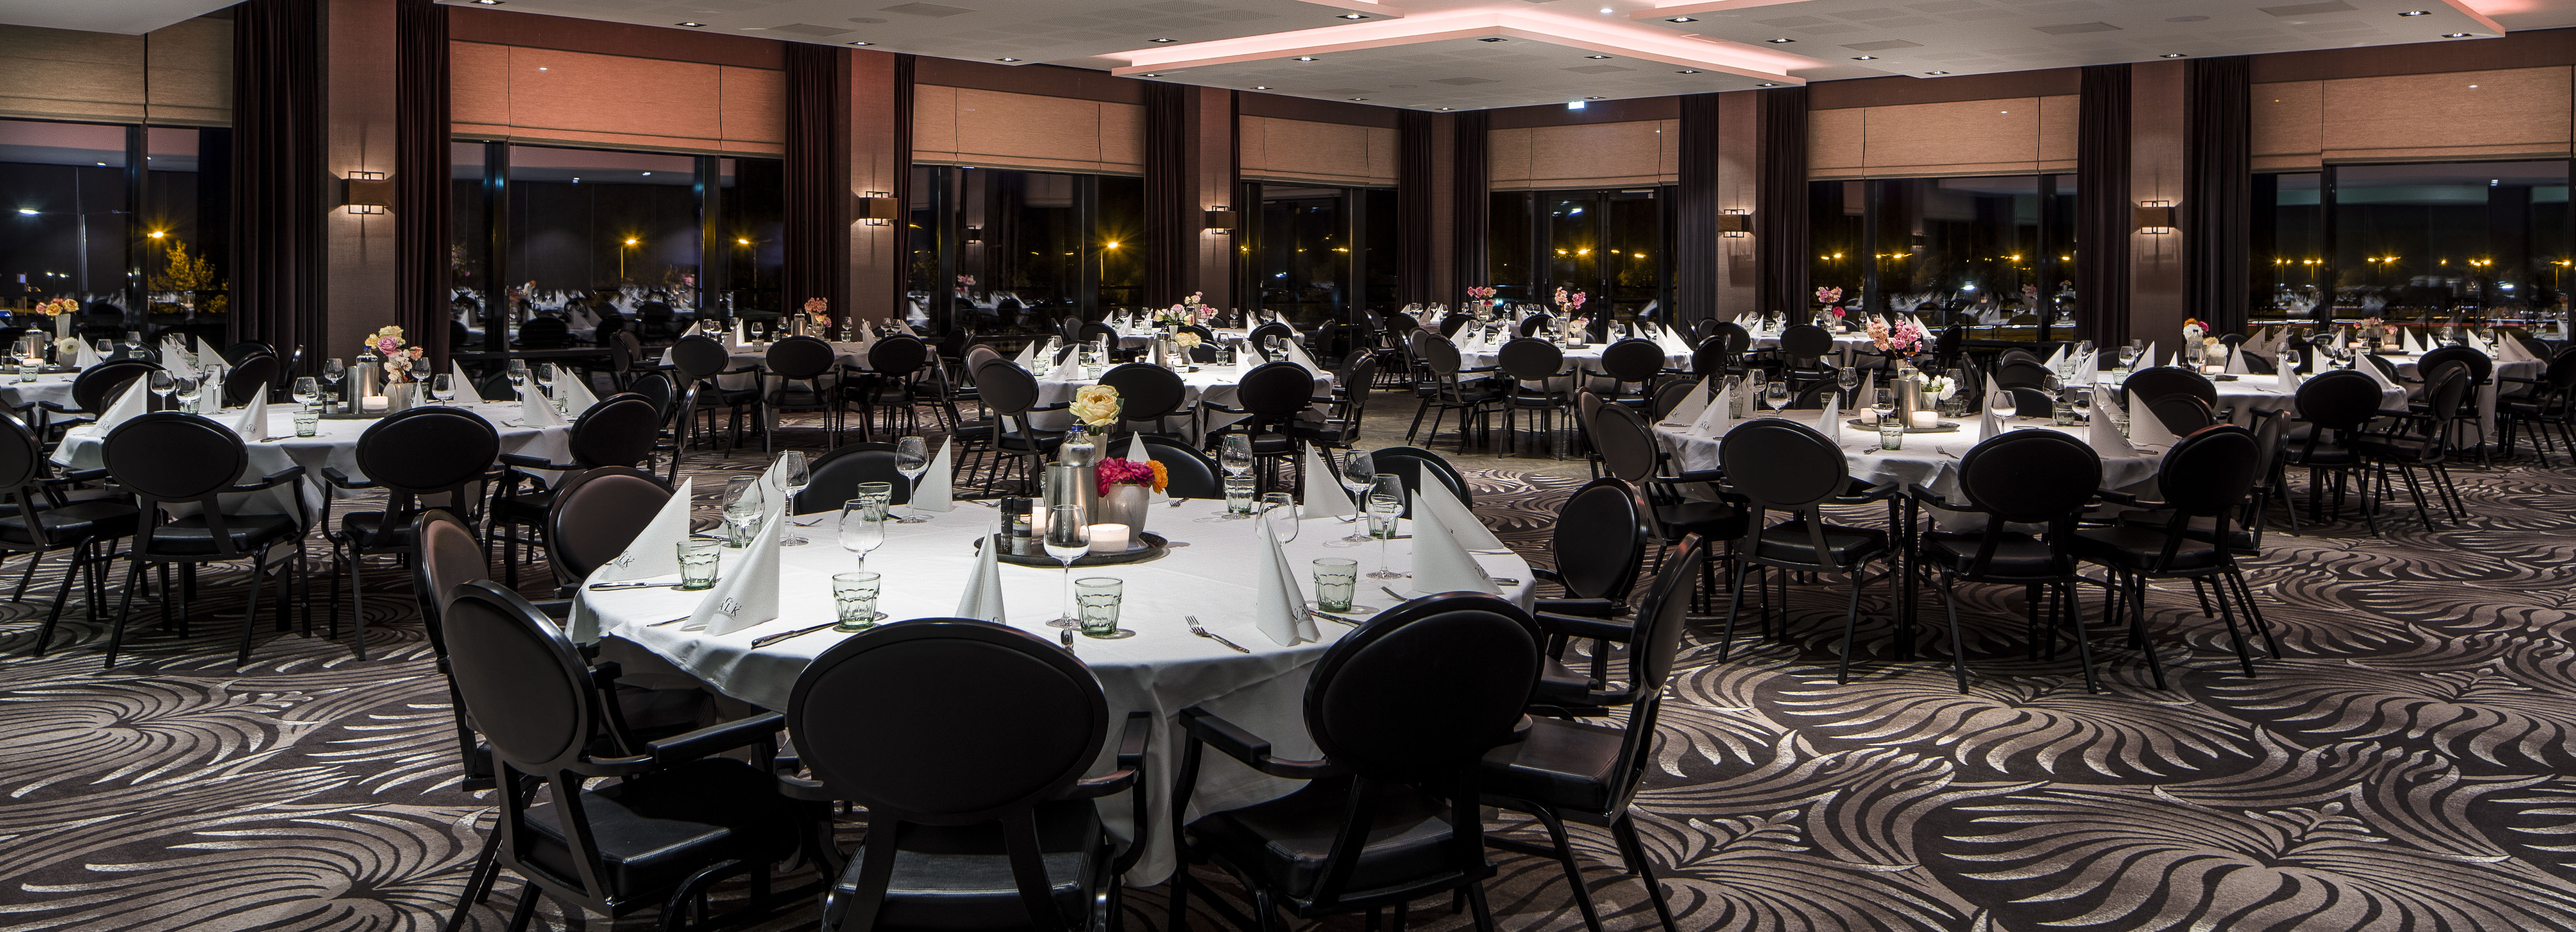 Let's Celebrate - Hotel Zwolle